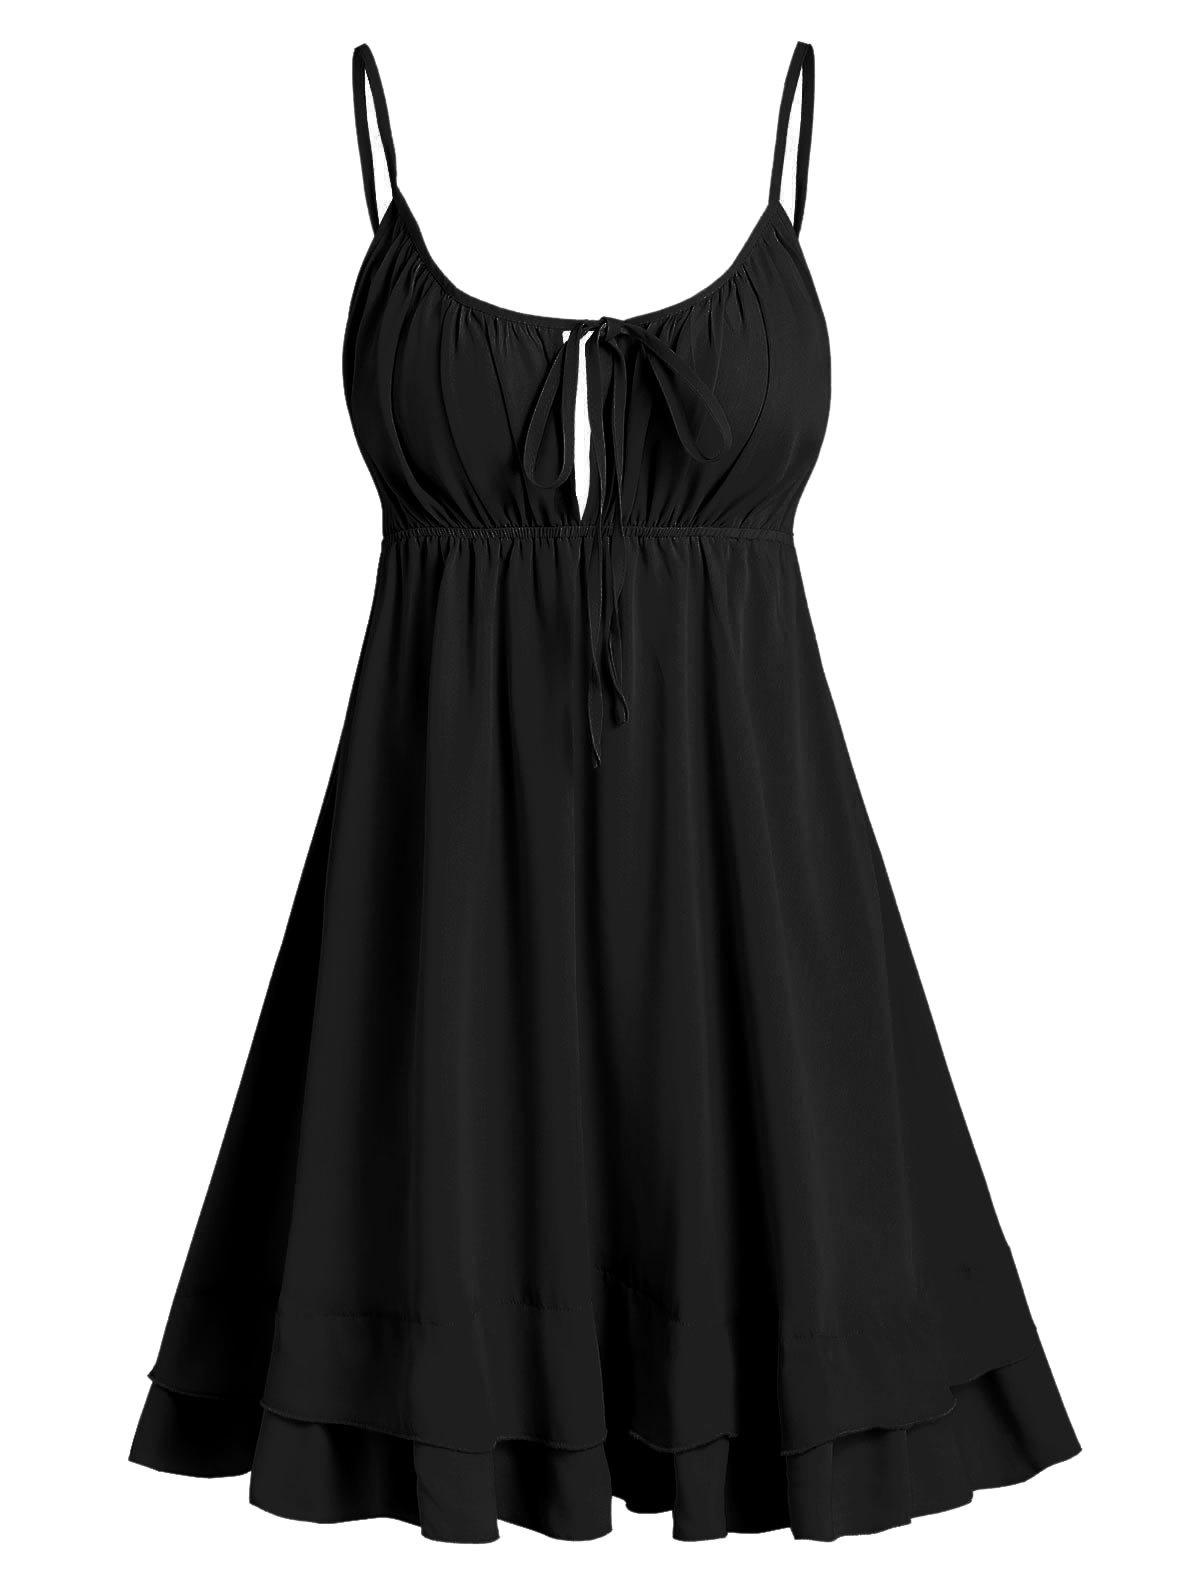 Open Back Tie Knot Flare Cami Dress - BLACK XL